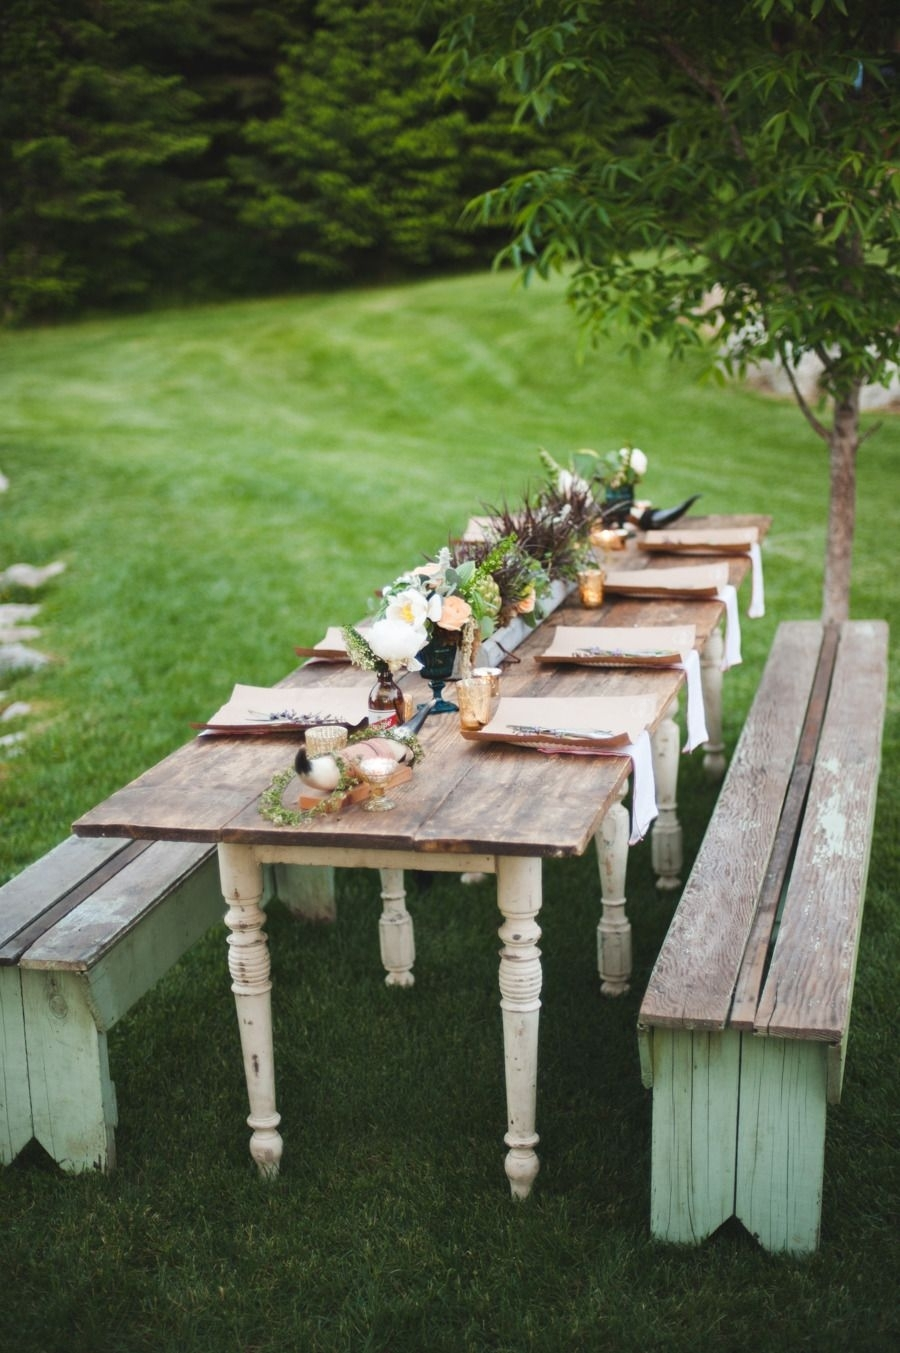 Farm To Table Entertaining | Diy: Wannabe Martha Stewart | Pinterest In Newest Bale Rustic Grey Dining Tables (Image 10 of 20)